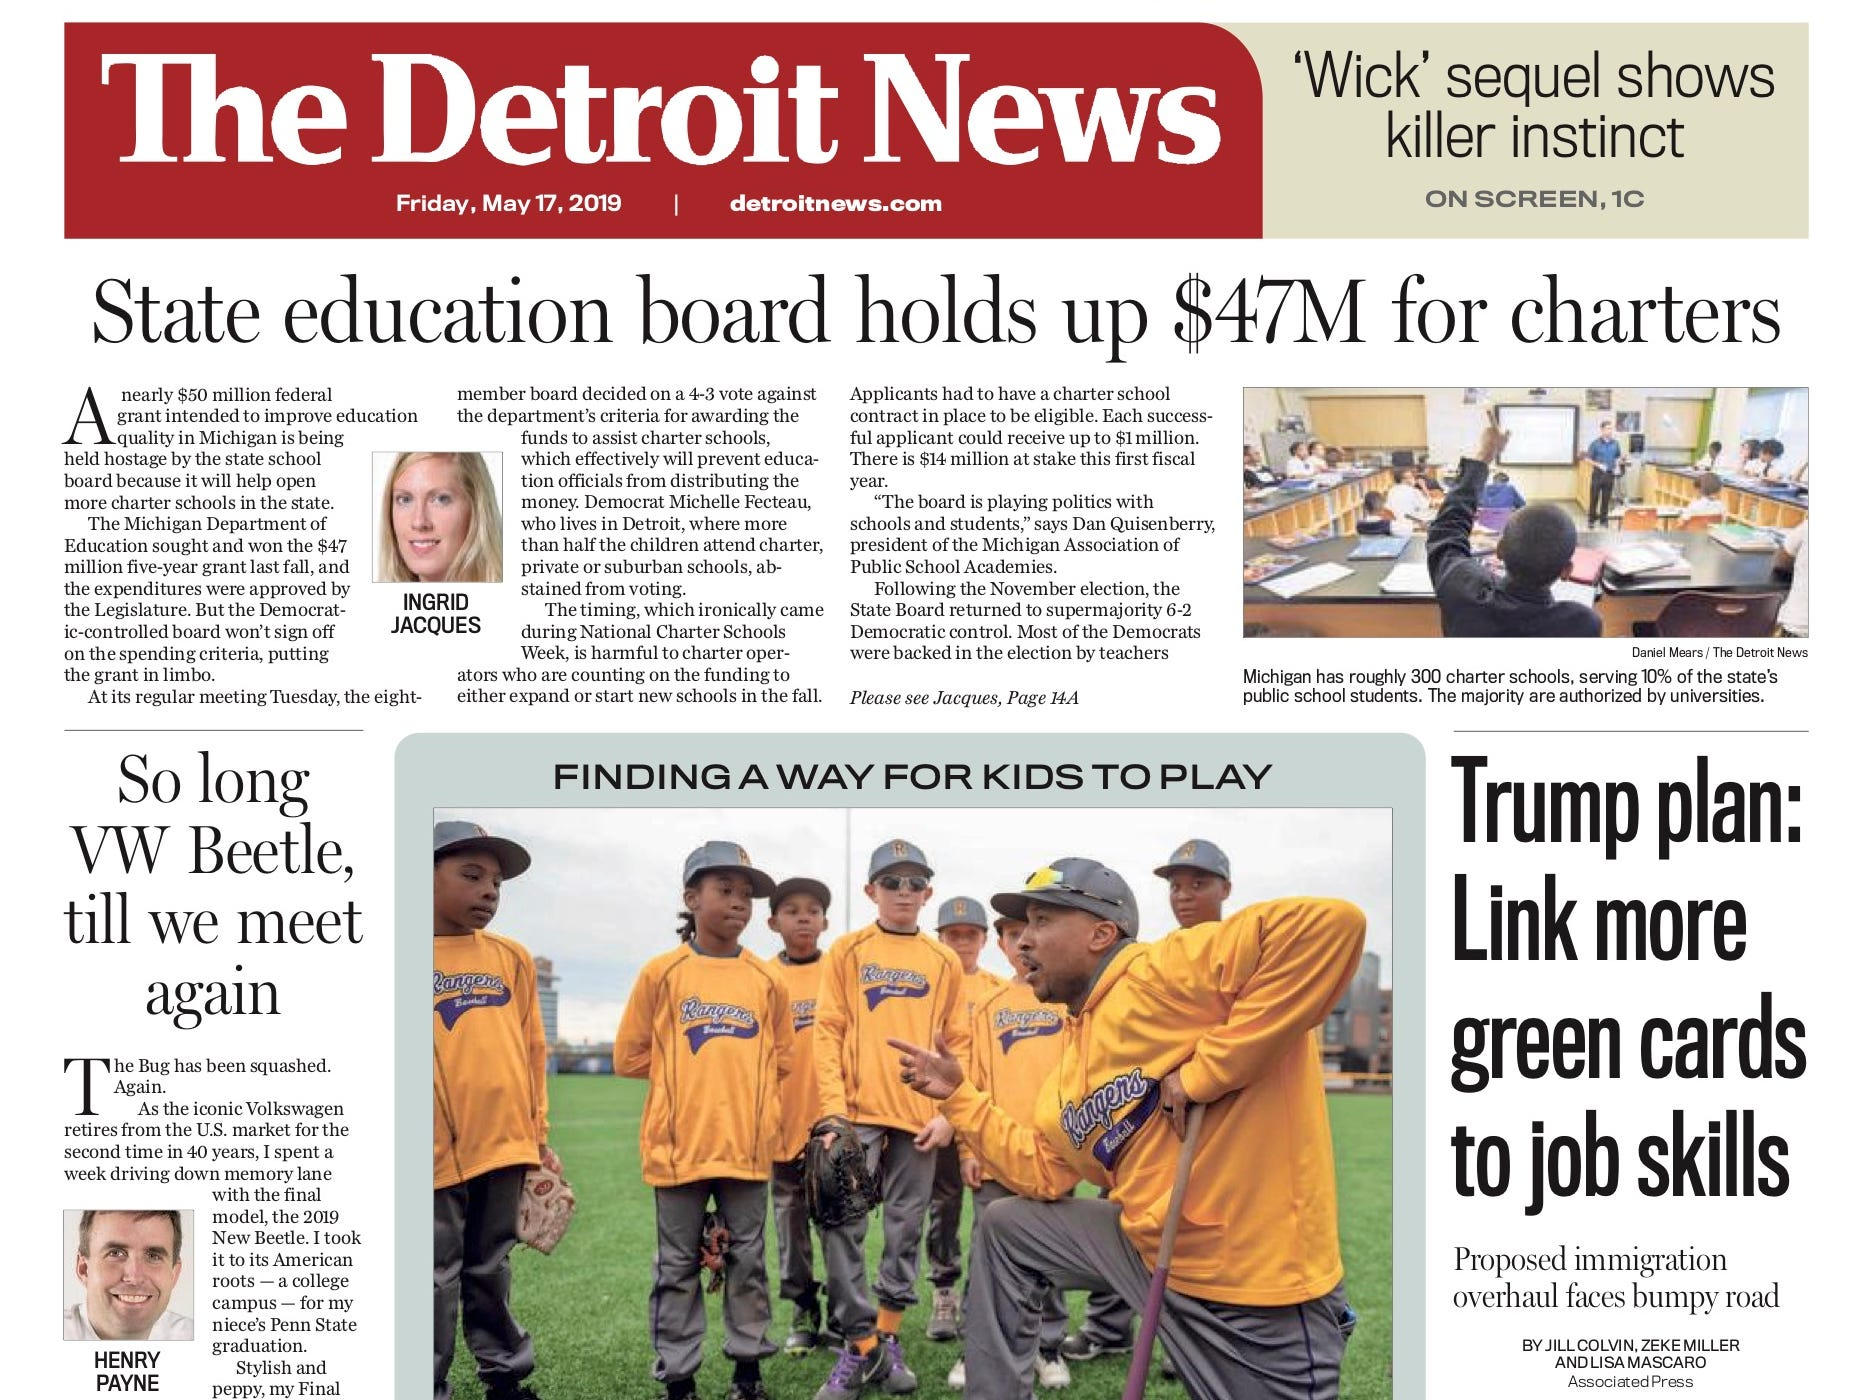 The front page of the Detroit News on May 17, 2019.